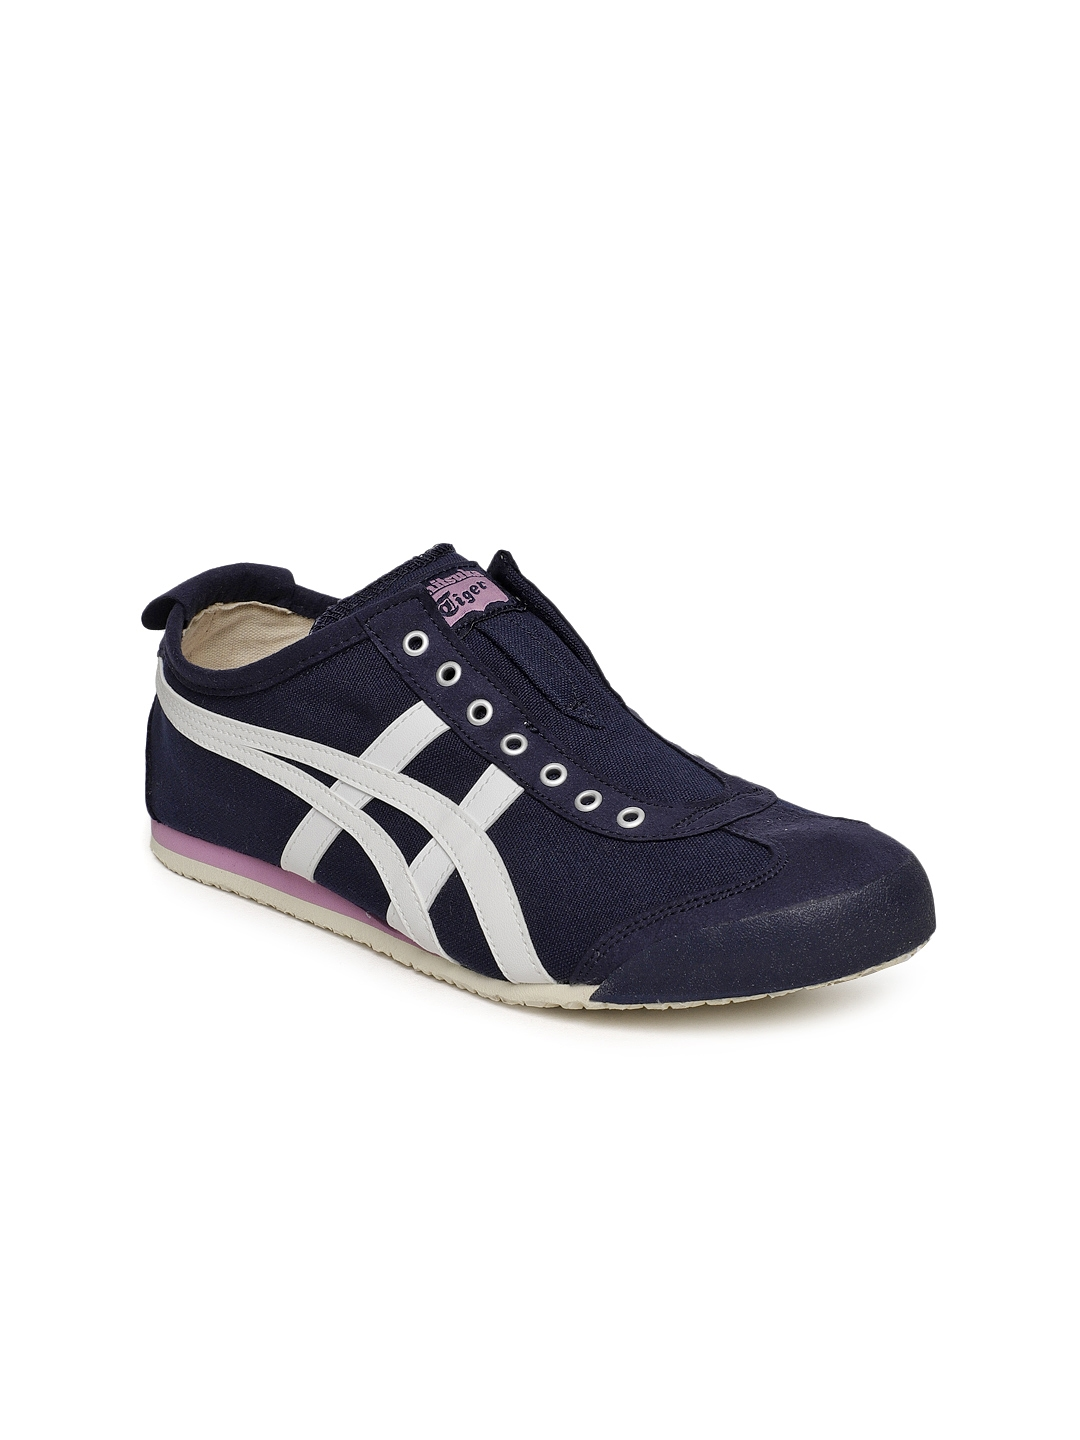 0cacd3c201f0ce Buy Onitsuka Tiger Mexico 66 Slip On Women Blue Sneakers - Casual ...